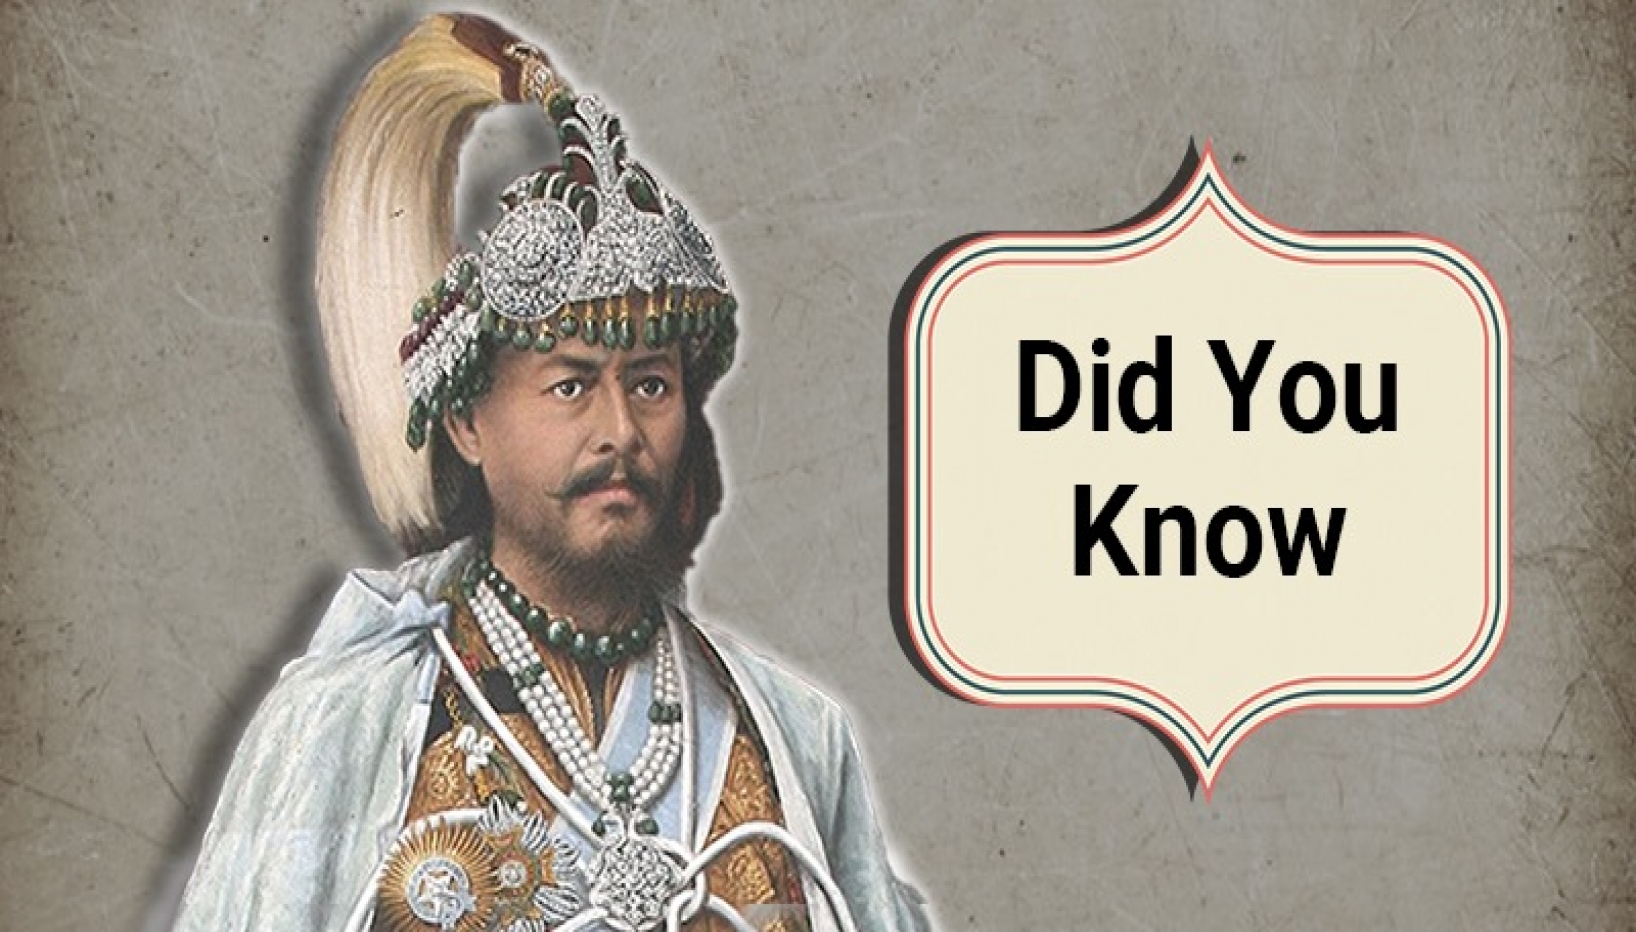 11 Fascinating Facts About Jung Bahadur Rana That Separate The Man From The Myth